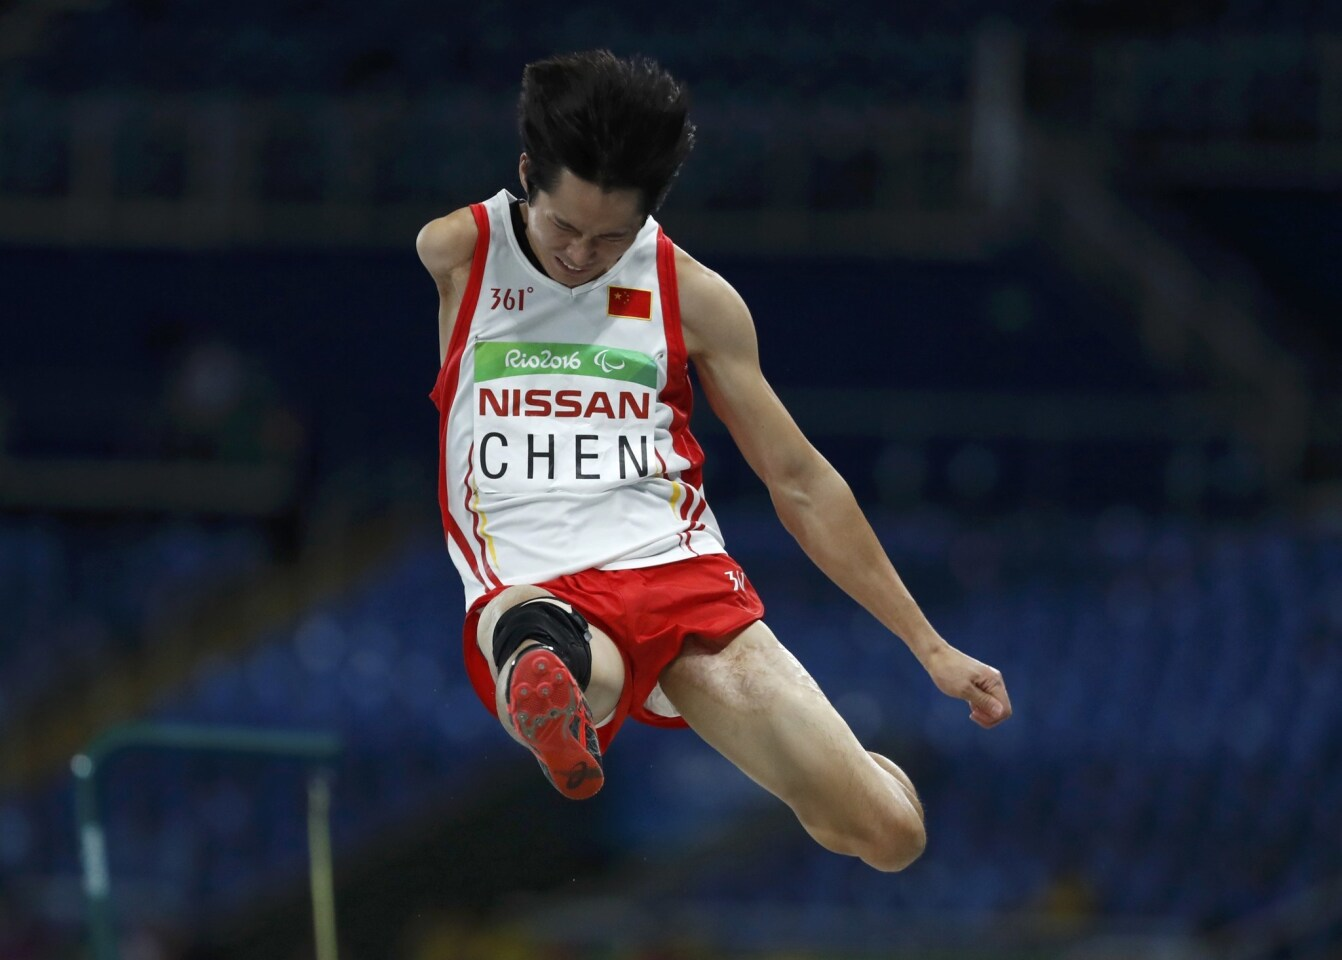 2016 Rio Paralympics - Athletics - Men's Long Jump - T47 Final - Olympic Stadium - Rio de Janeiro, Brazil - 14/09/2016. Chen Hongjie of China competes. REUTERS/Ricardo Moraes FOR EDITORIAL USE ONLY. NOT FOR SALE FOR MARKETING OR ADVERTISING CAMPAIGNS. ** Usable by SD ONLY **